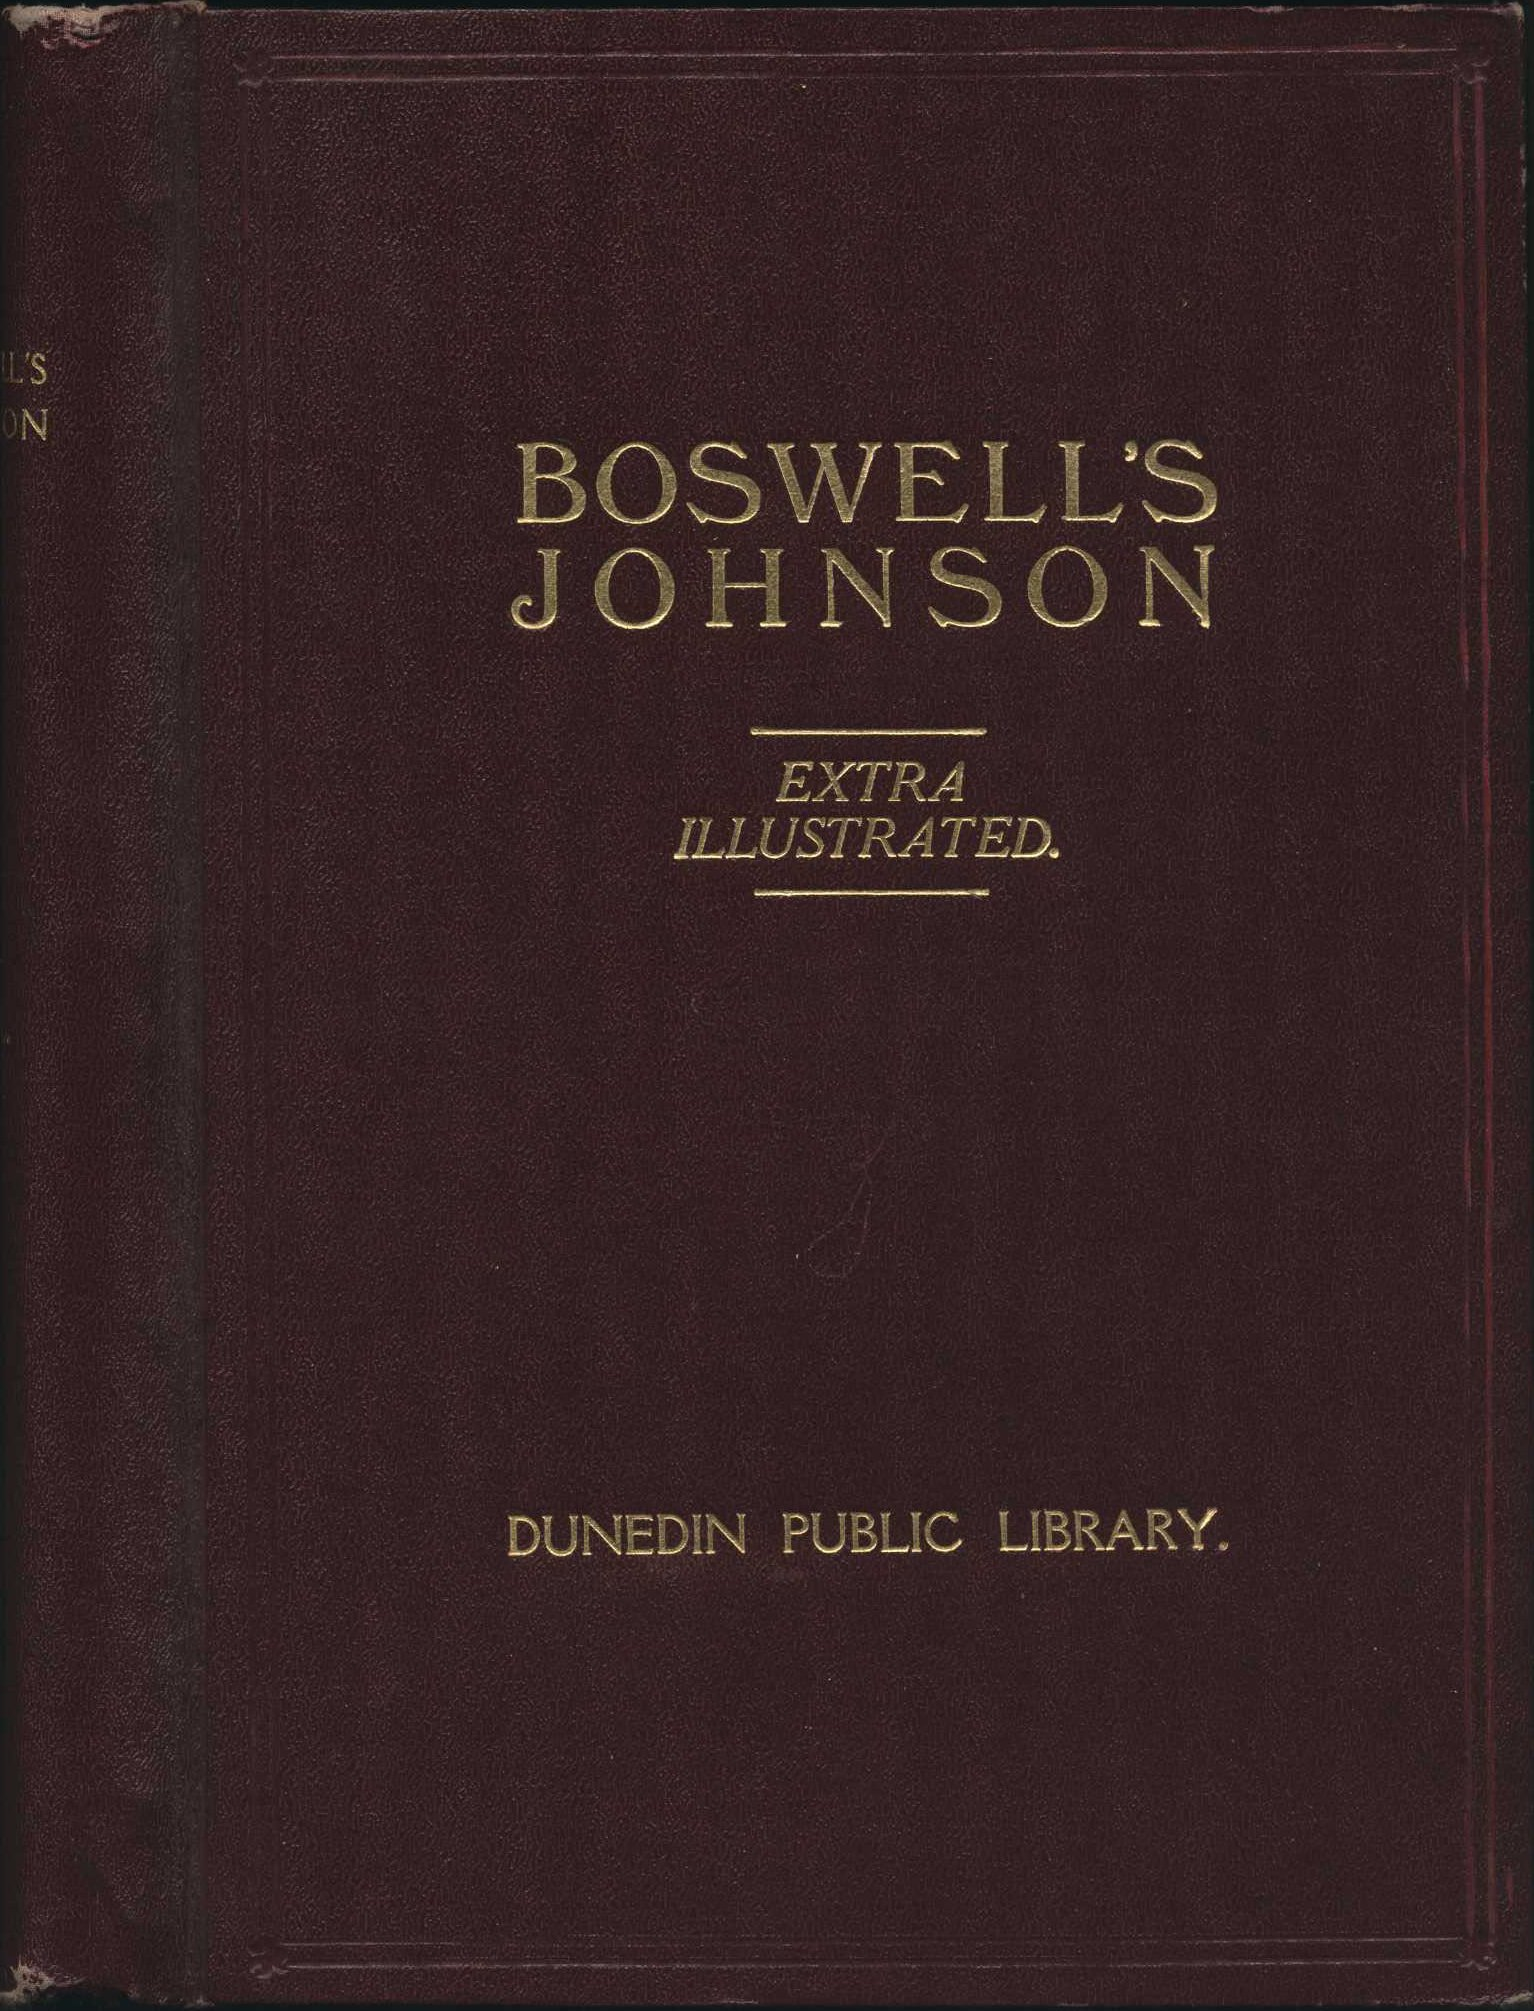 James Boswell. The Life of Samuel Johnson. London: Sir Isaac Pitman & Sons Ltd., 1907; extra-illustrated by A.H. Reed. 10 volumes, Vol. 1 displayed.